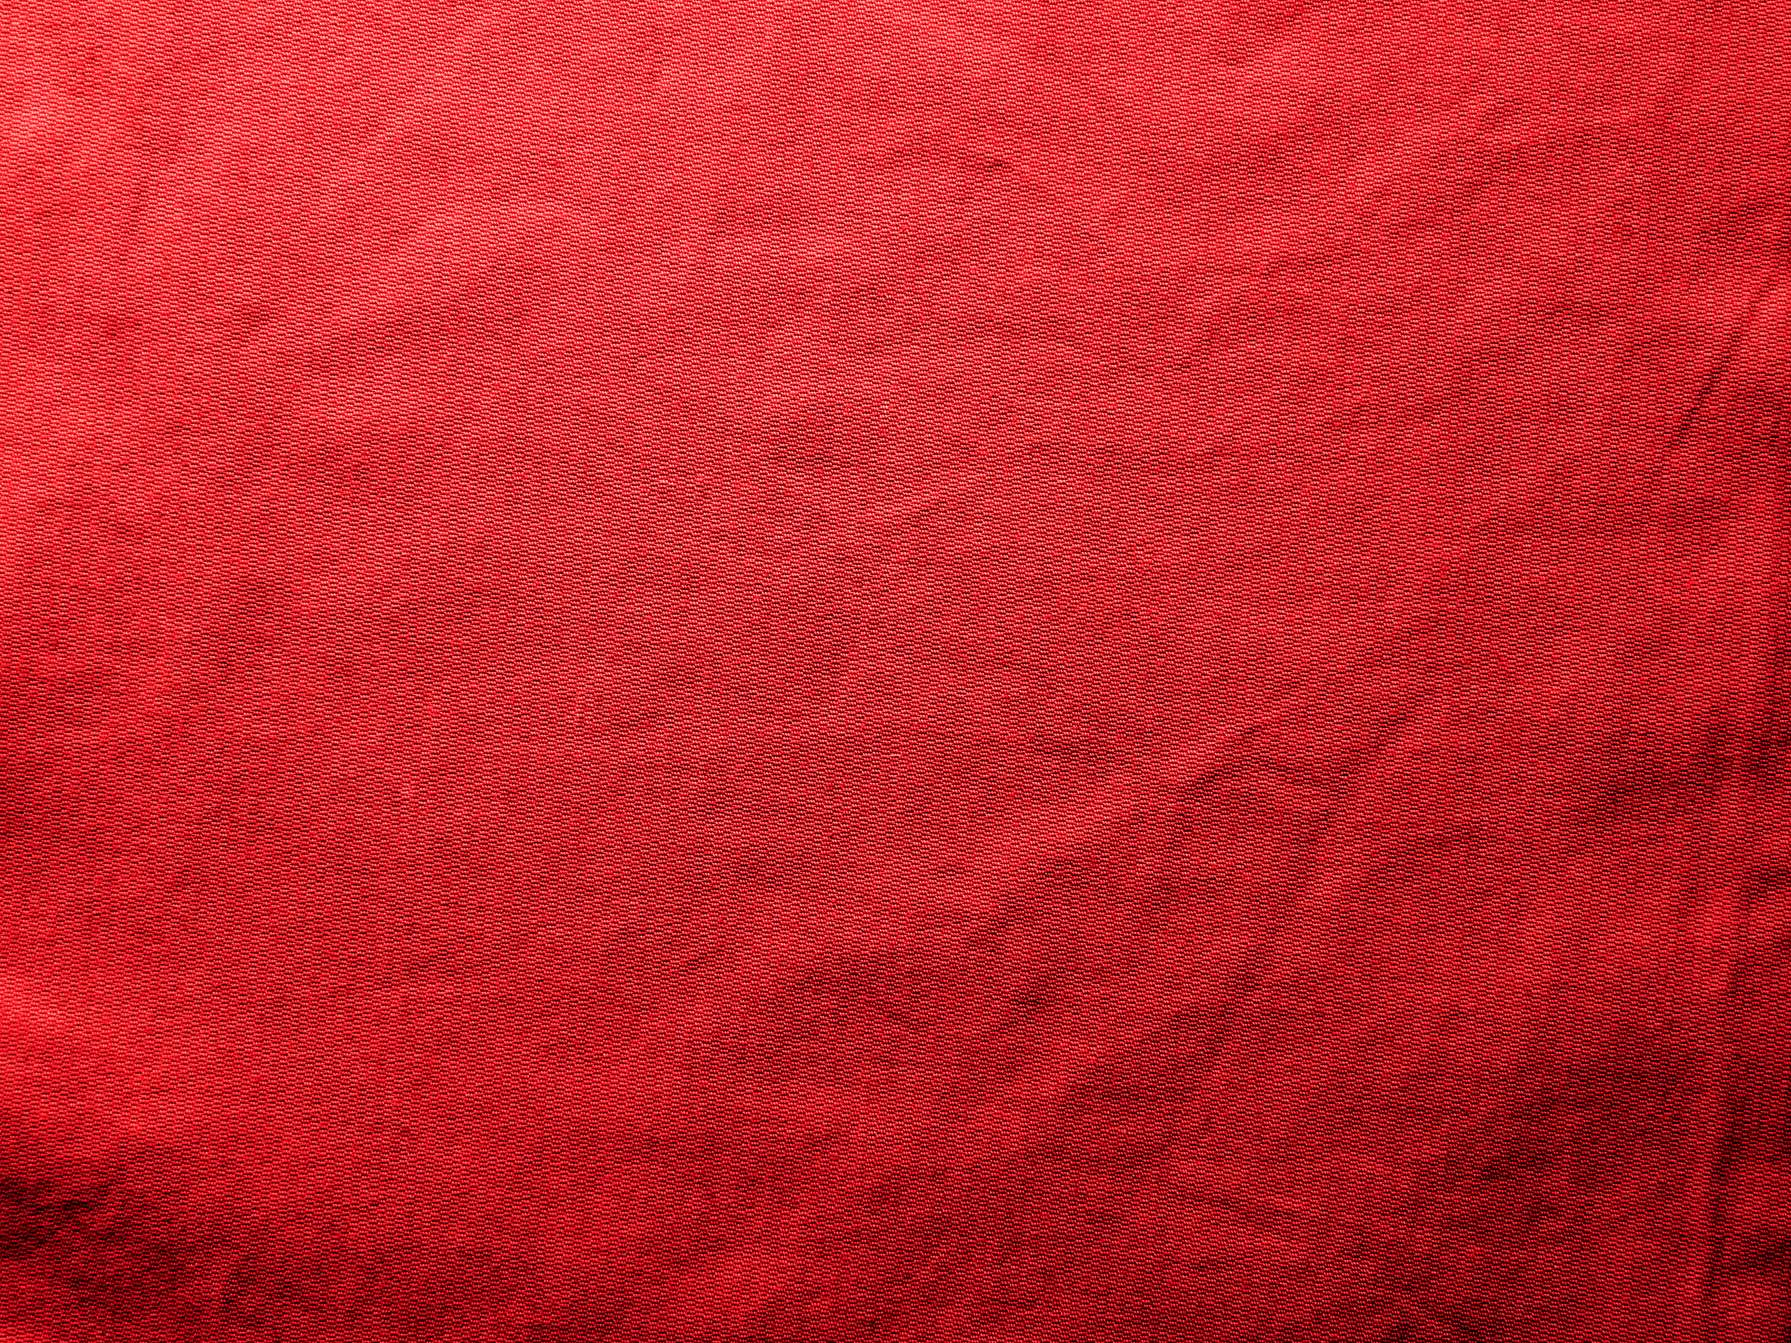 Black And White Interior Design Vintage Red Canvas Texture Background Photohdx